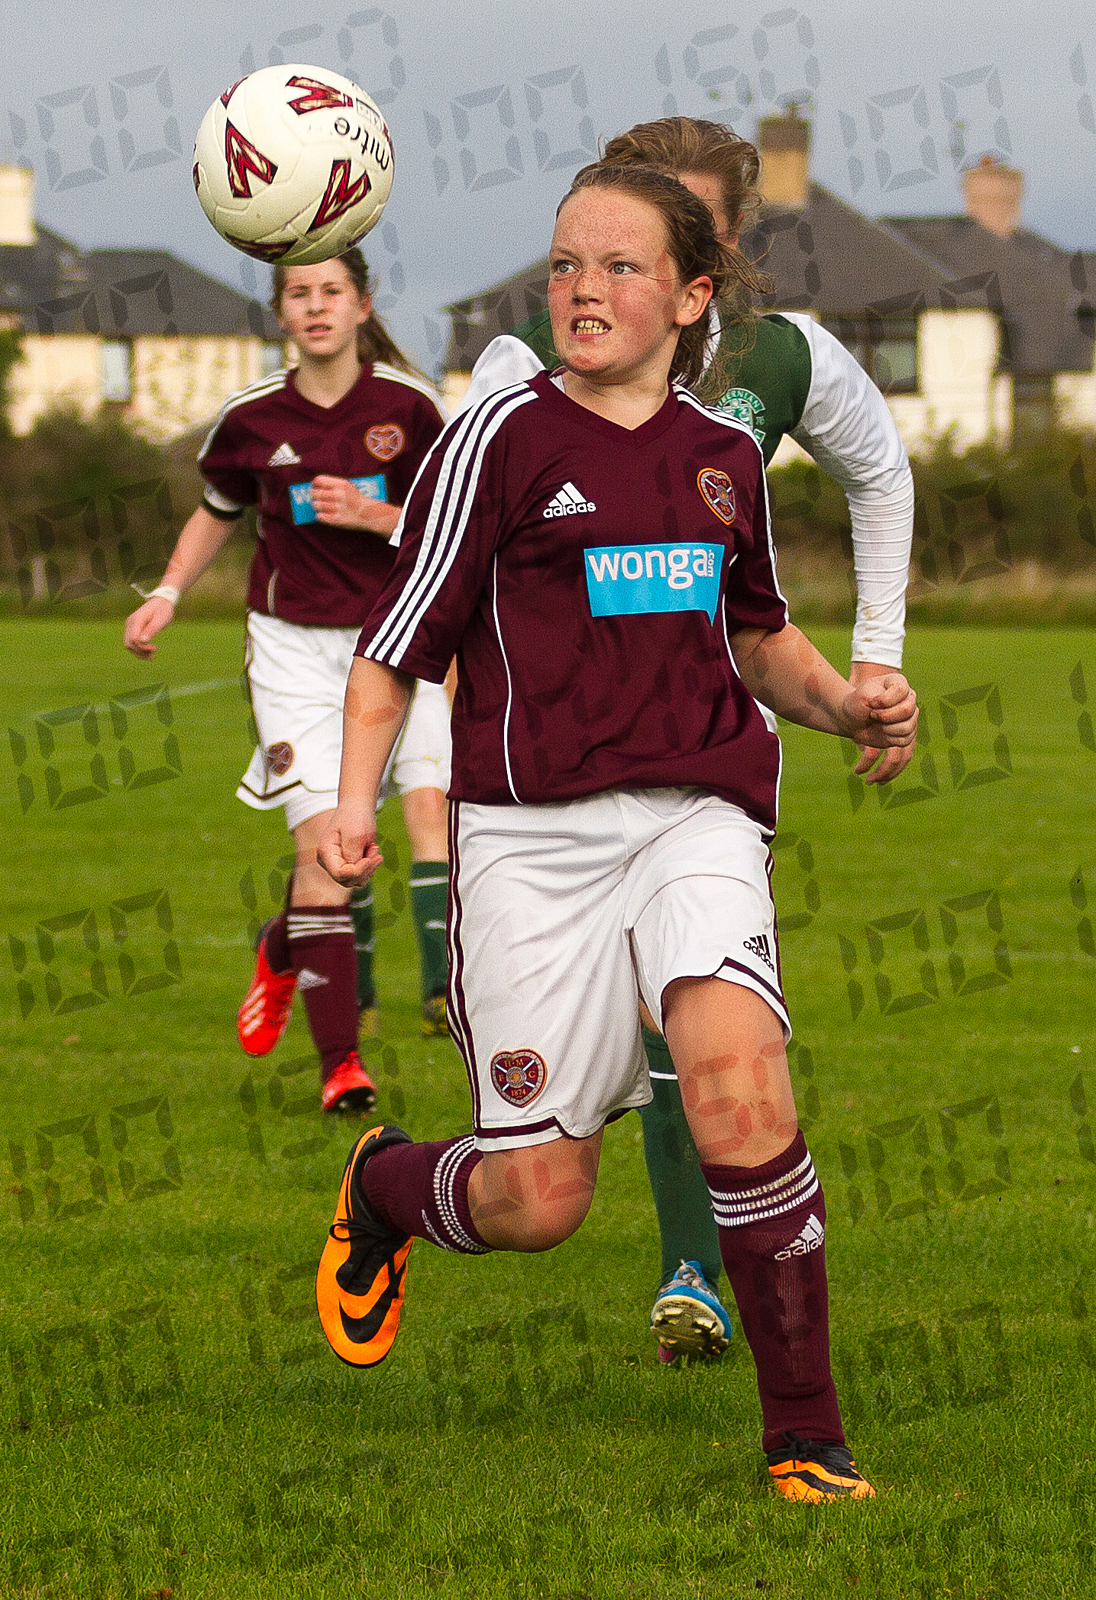 Hibs_v_Hearts_girls_13s-19.jpg